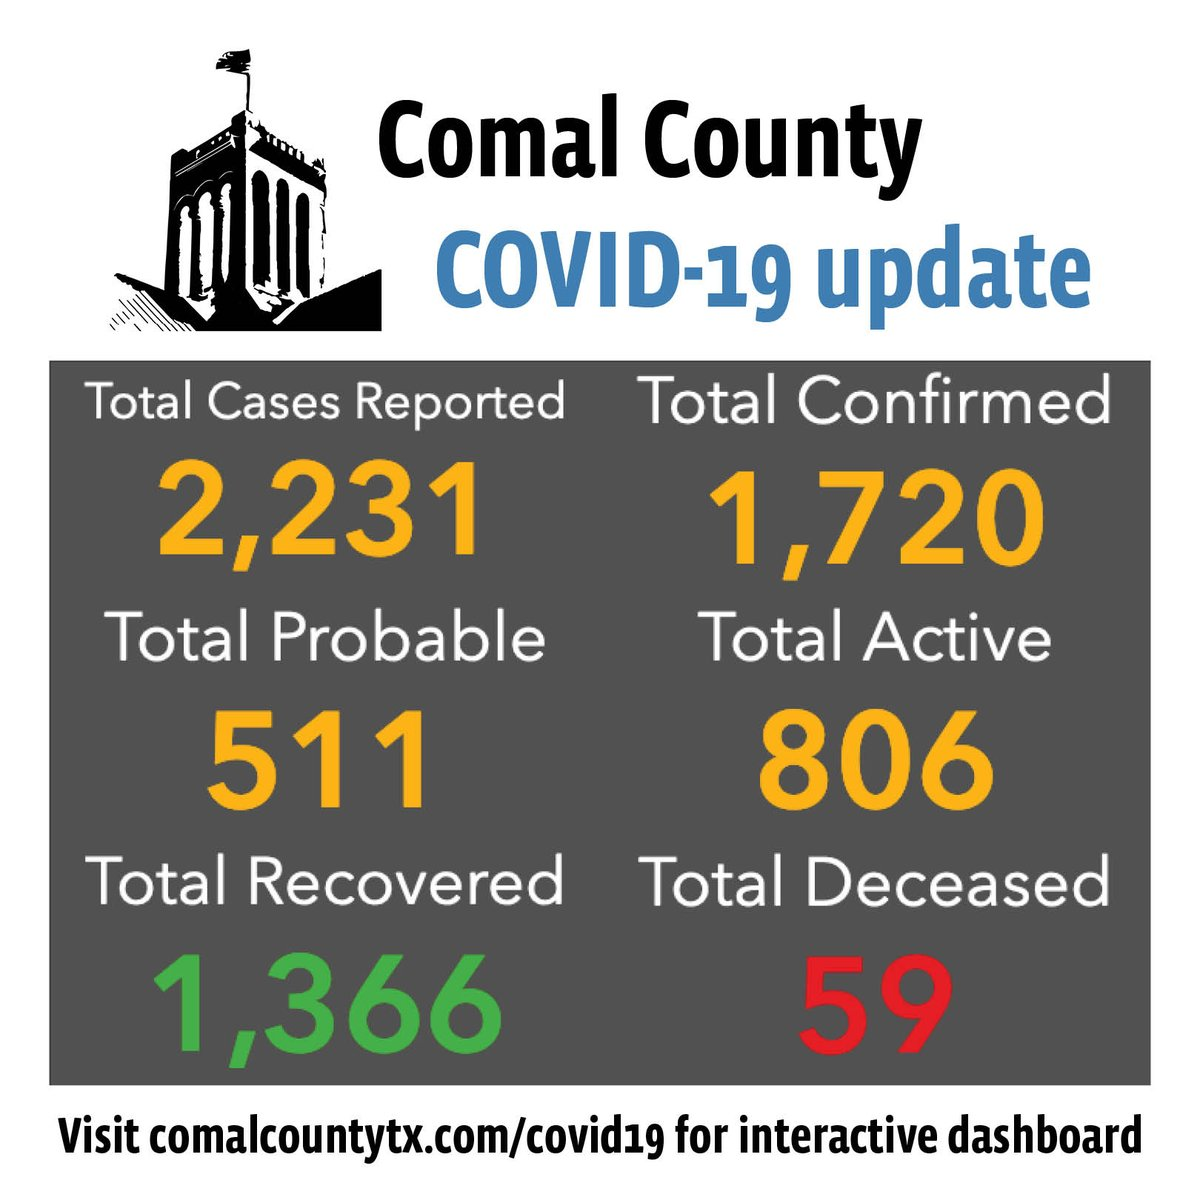 Comal County confirms three COVID-19 deaths, reports 74 new cases: